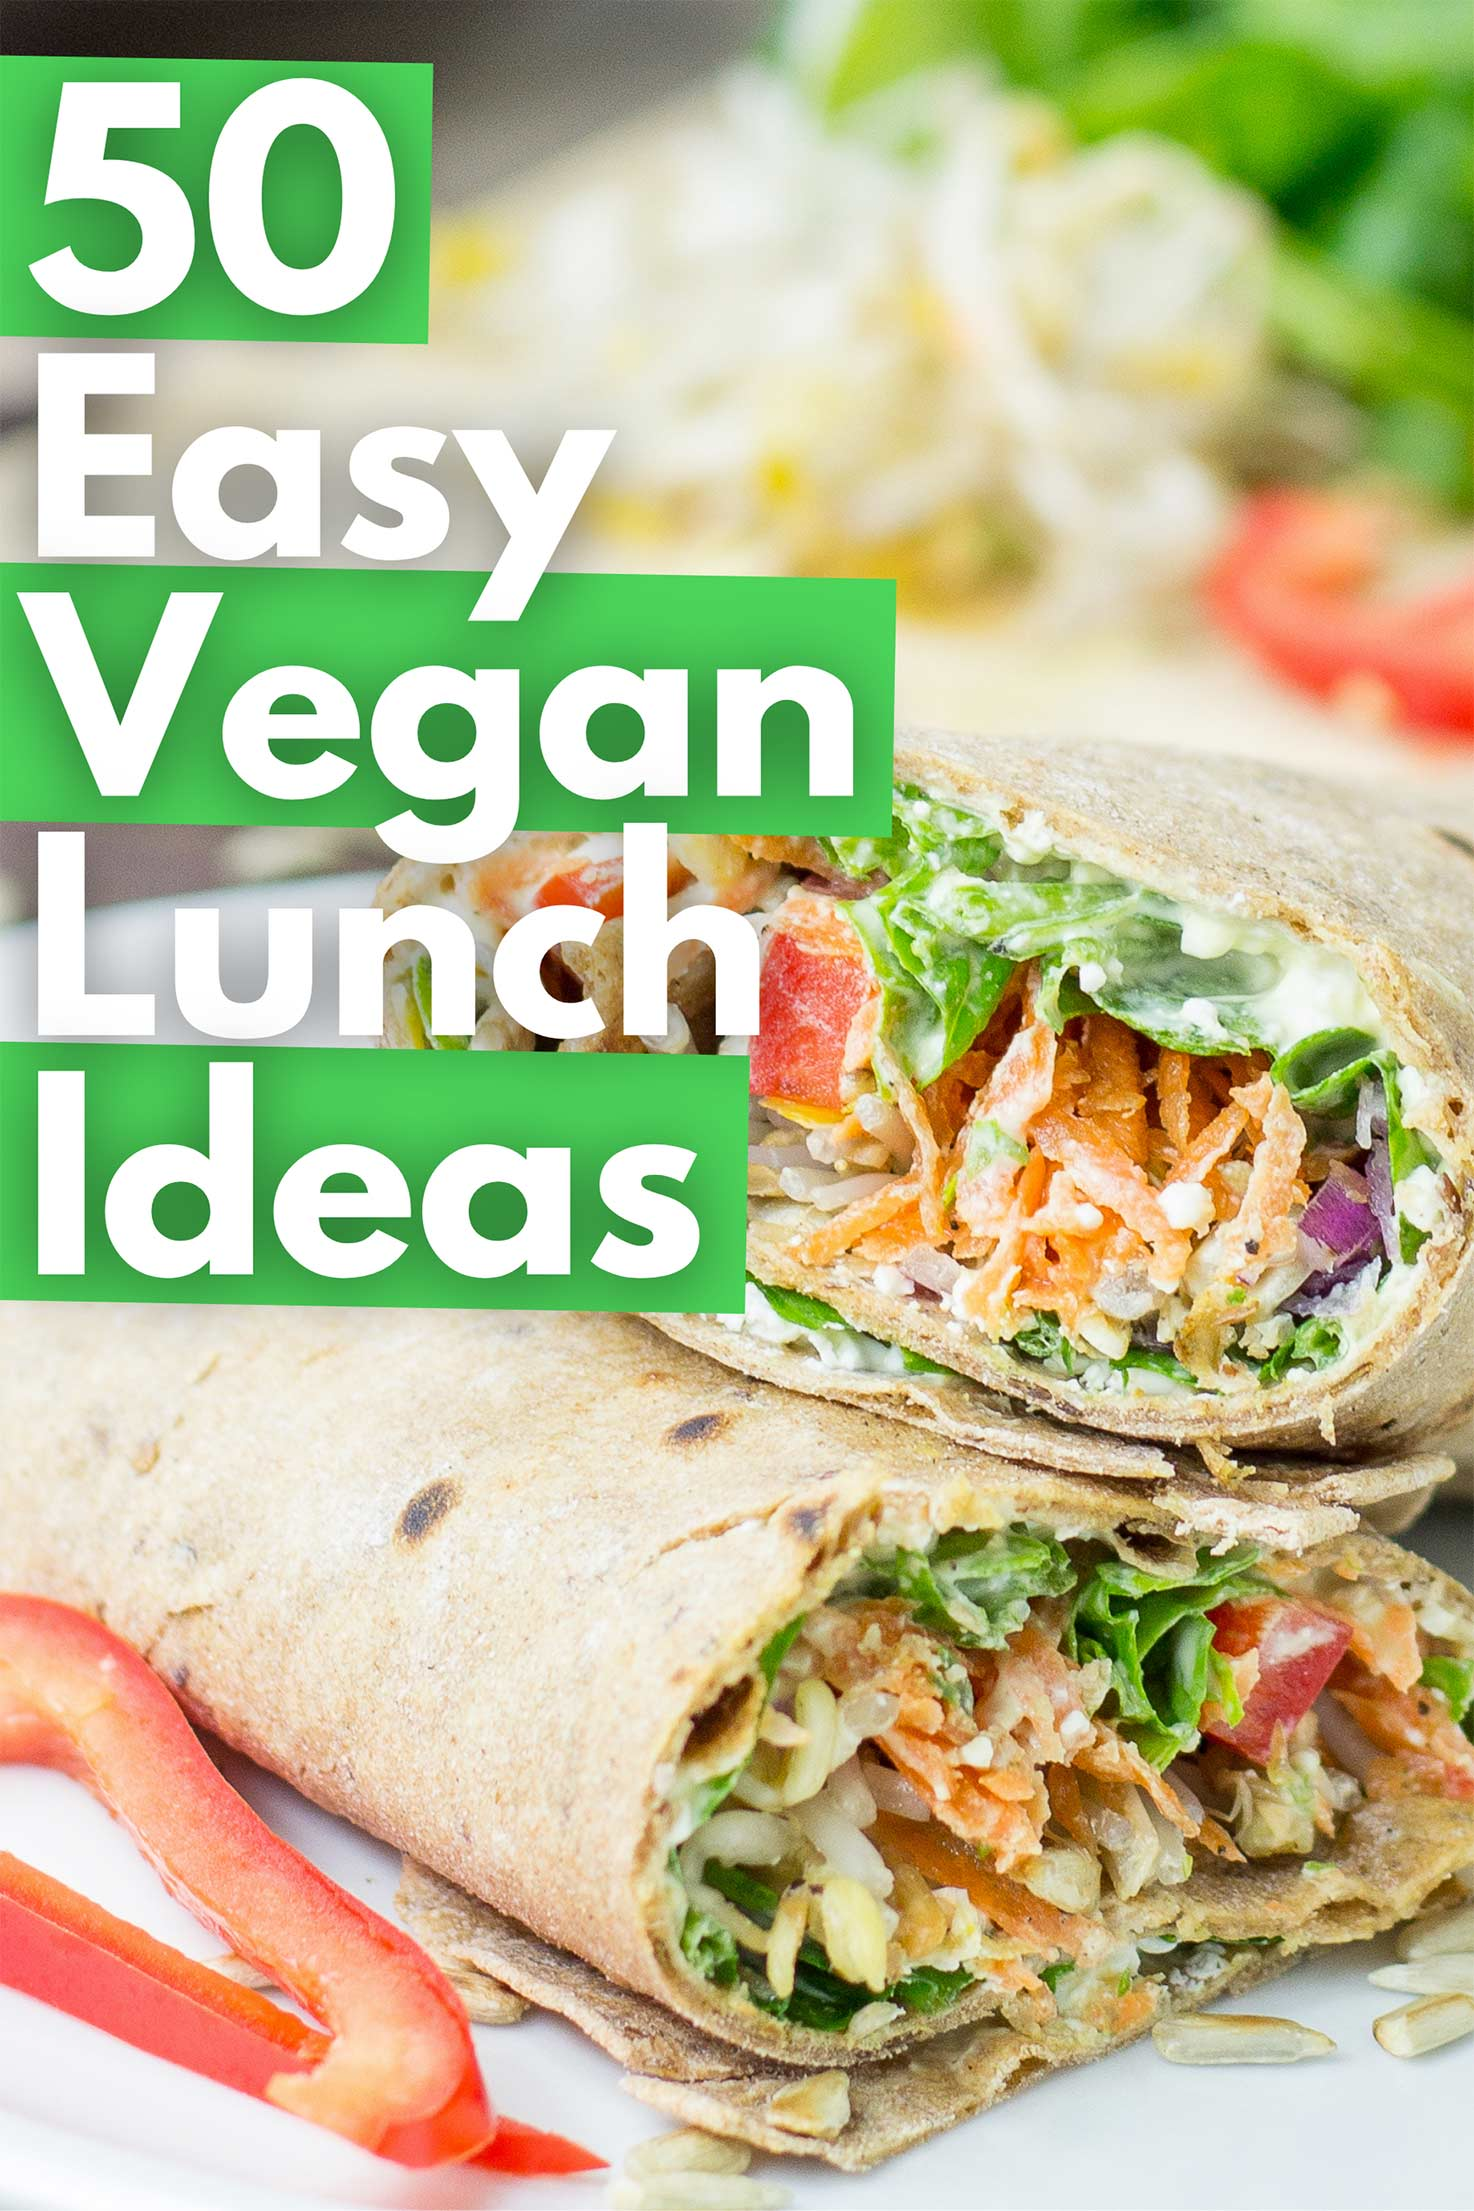 50 Easy Vegan Lunch Ideas – Making lunch vibrant, exciting and delicious | Hurry The Food Up